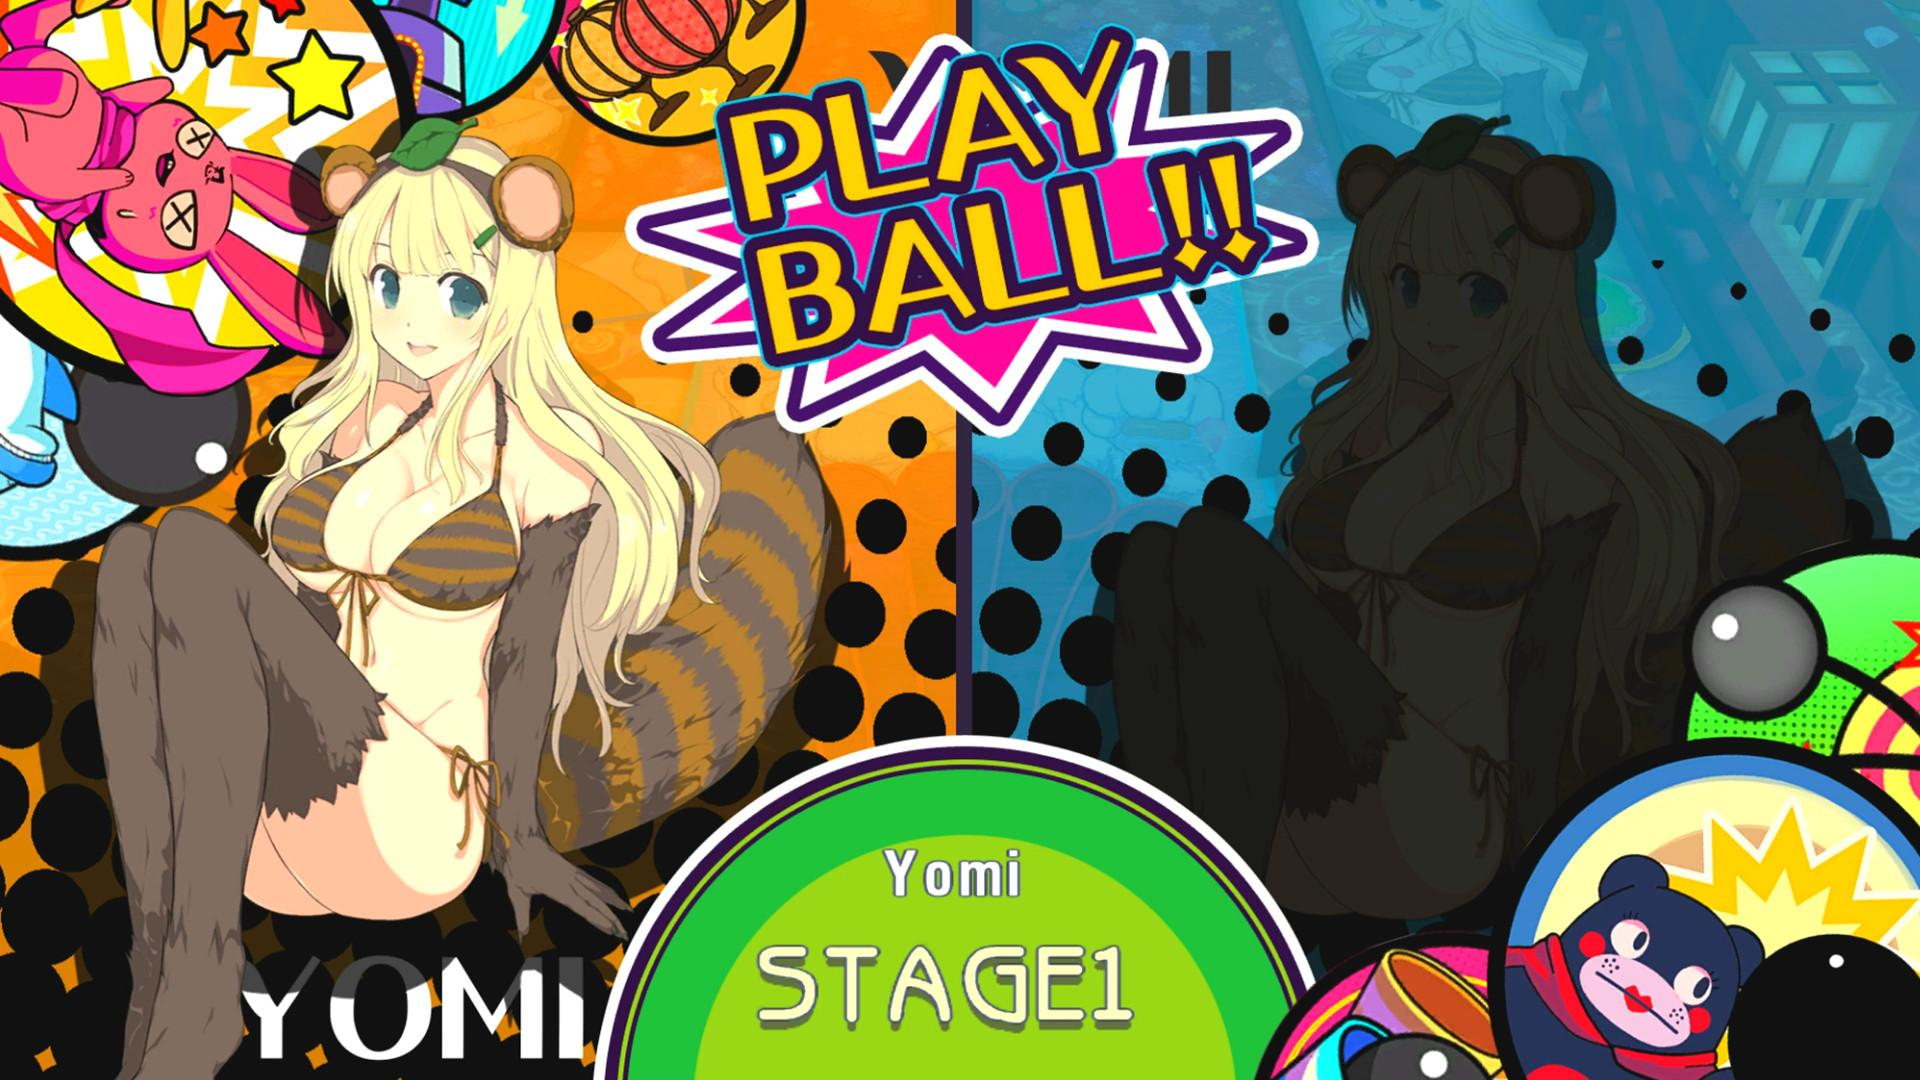 Senran Kagura: Peach Ball in arrivo questa estate in occidente